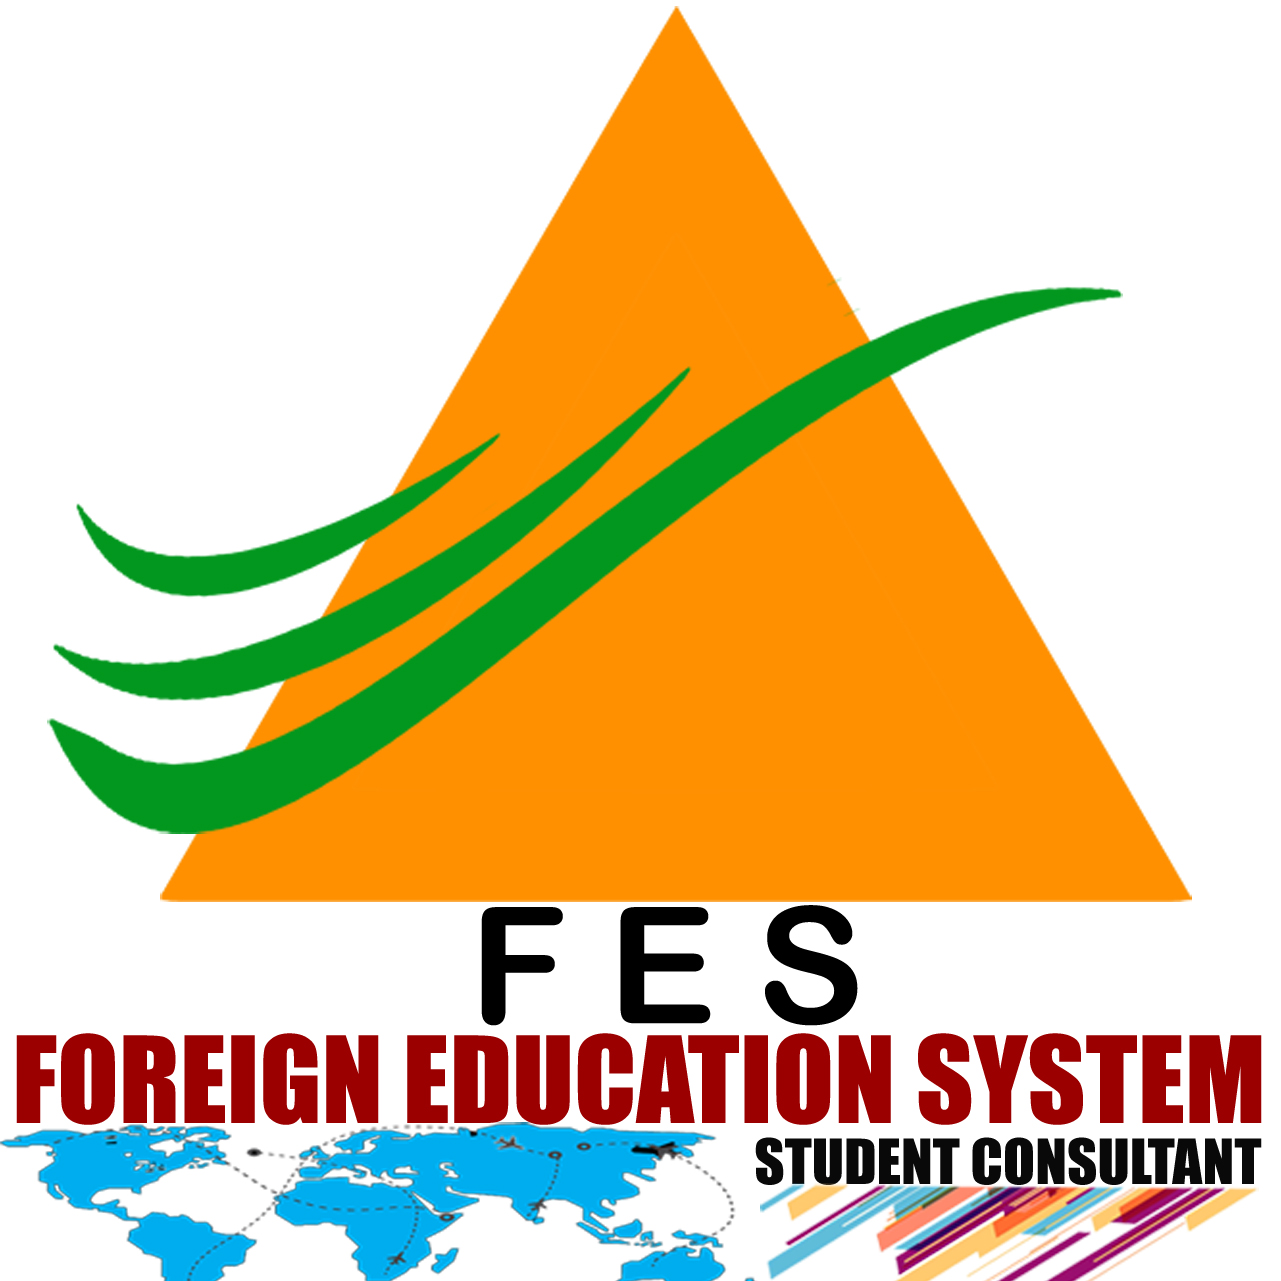 FOREIGN EDUCATION SYSTEM